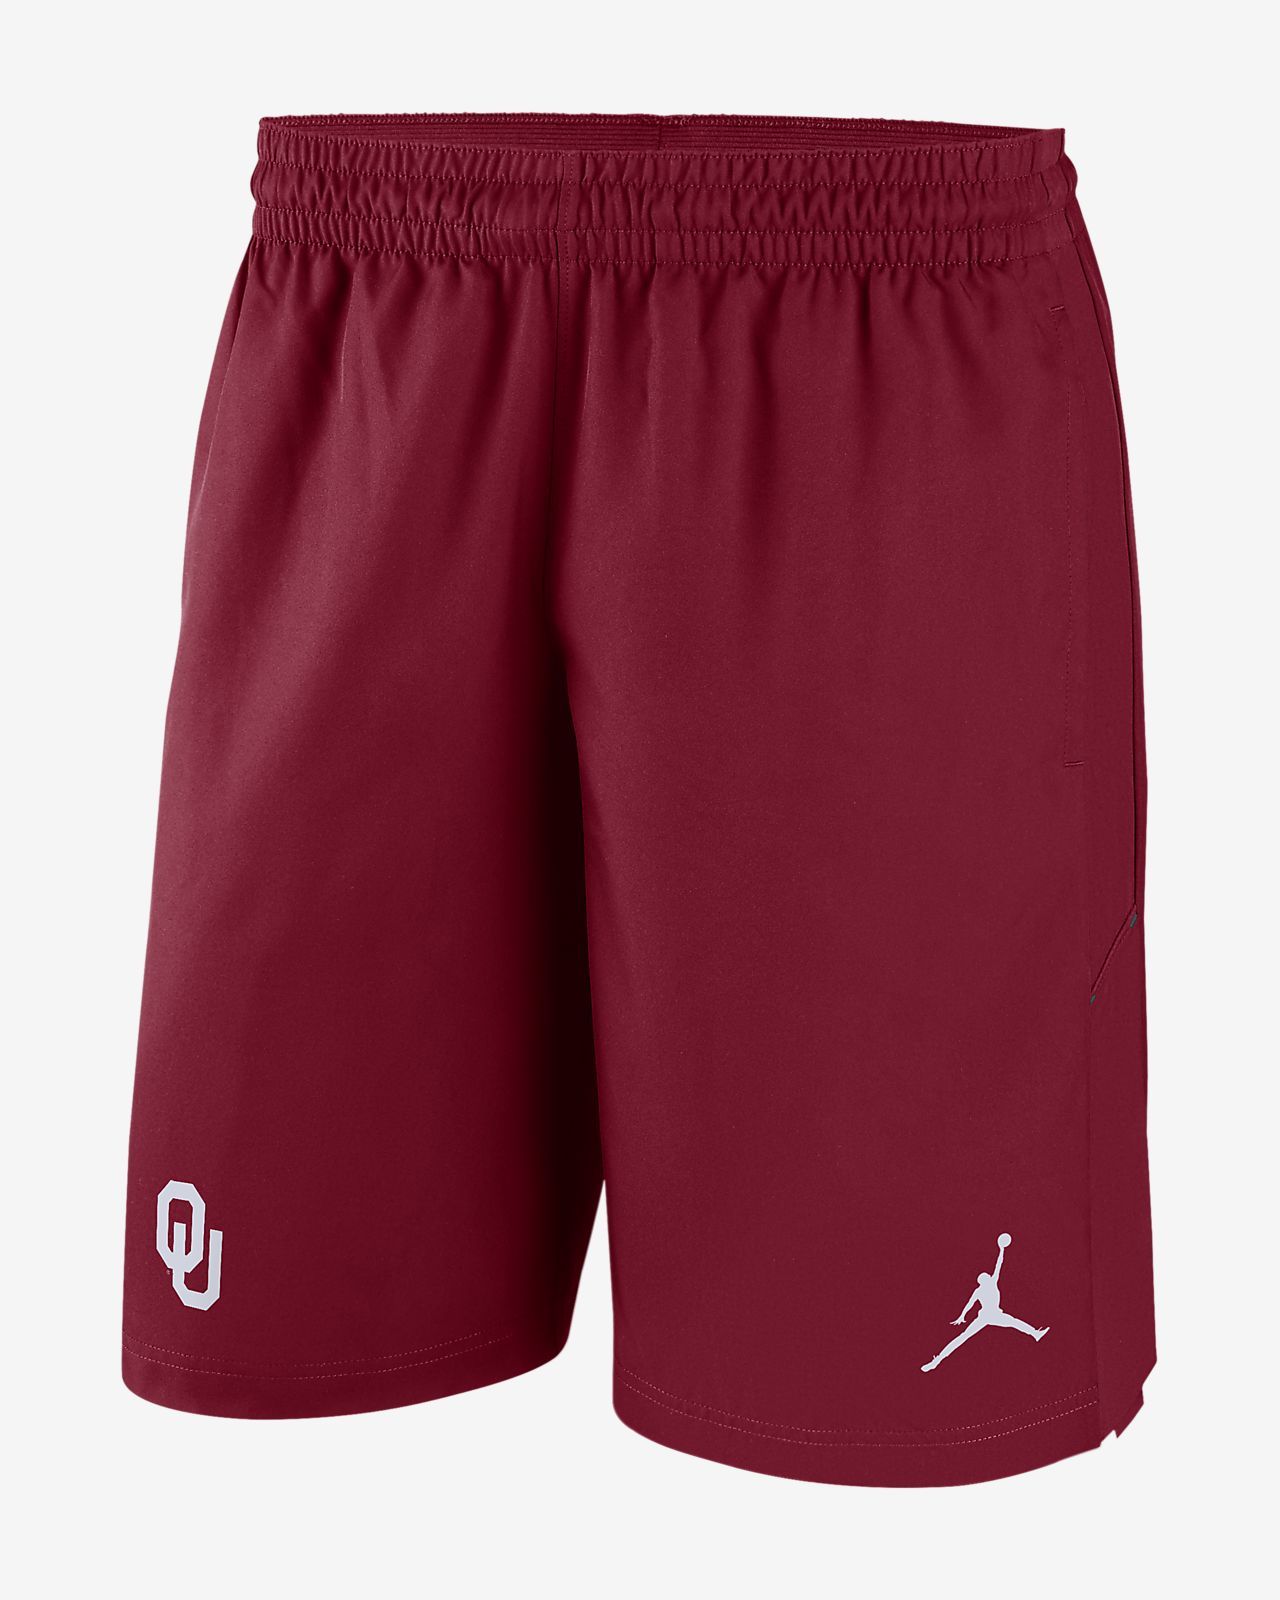 Jordan 23 Alpha Dri-FIT (Oklahoma) Men's Training Shorts